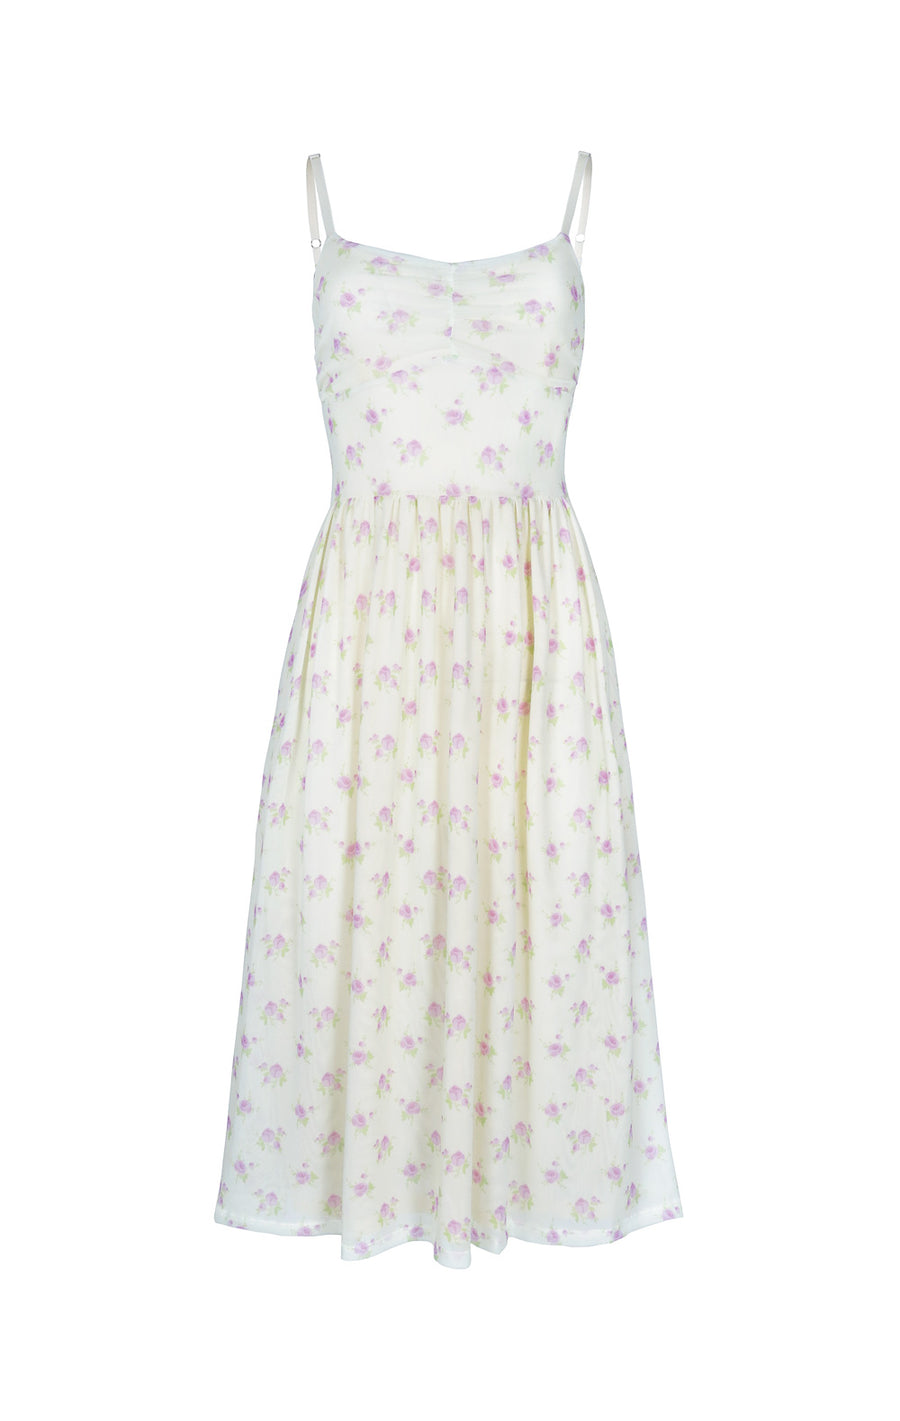 Misty Dress in Cream Tablecloth